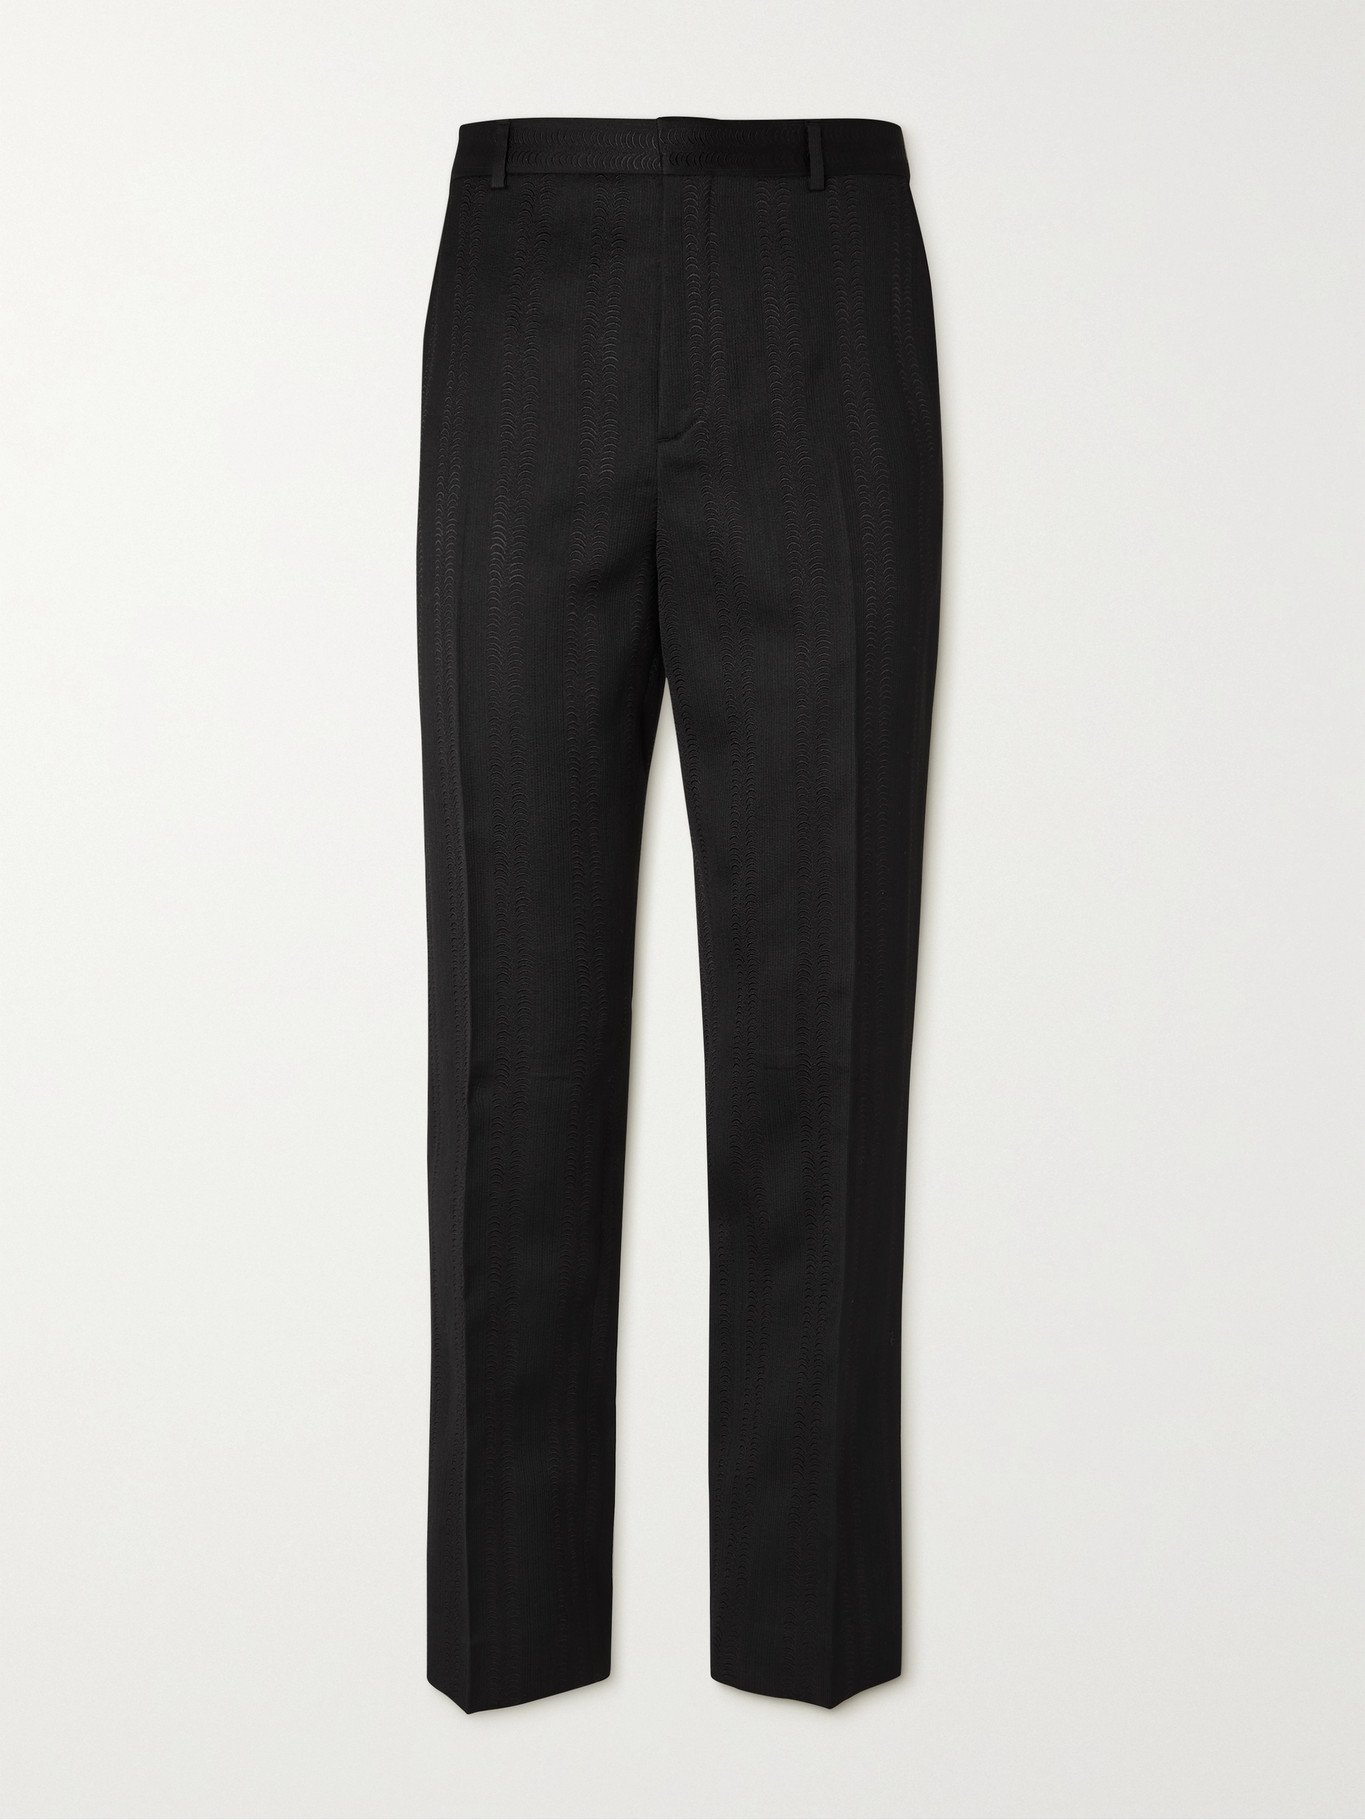 Photo: SAINT LAURENT - Wool, Silk and Cotton-Blend Jacquard Trousers - Black